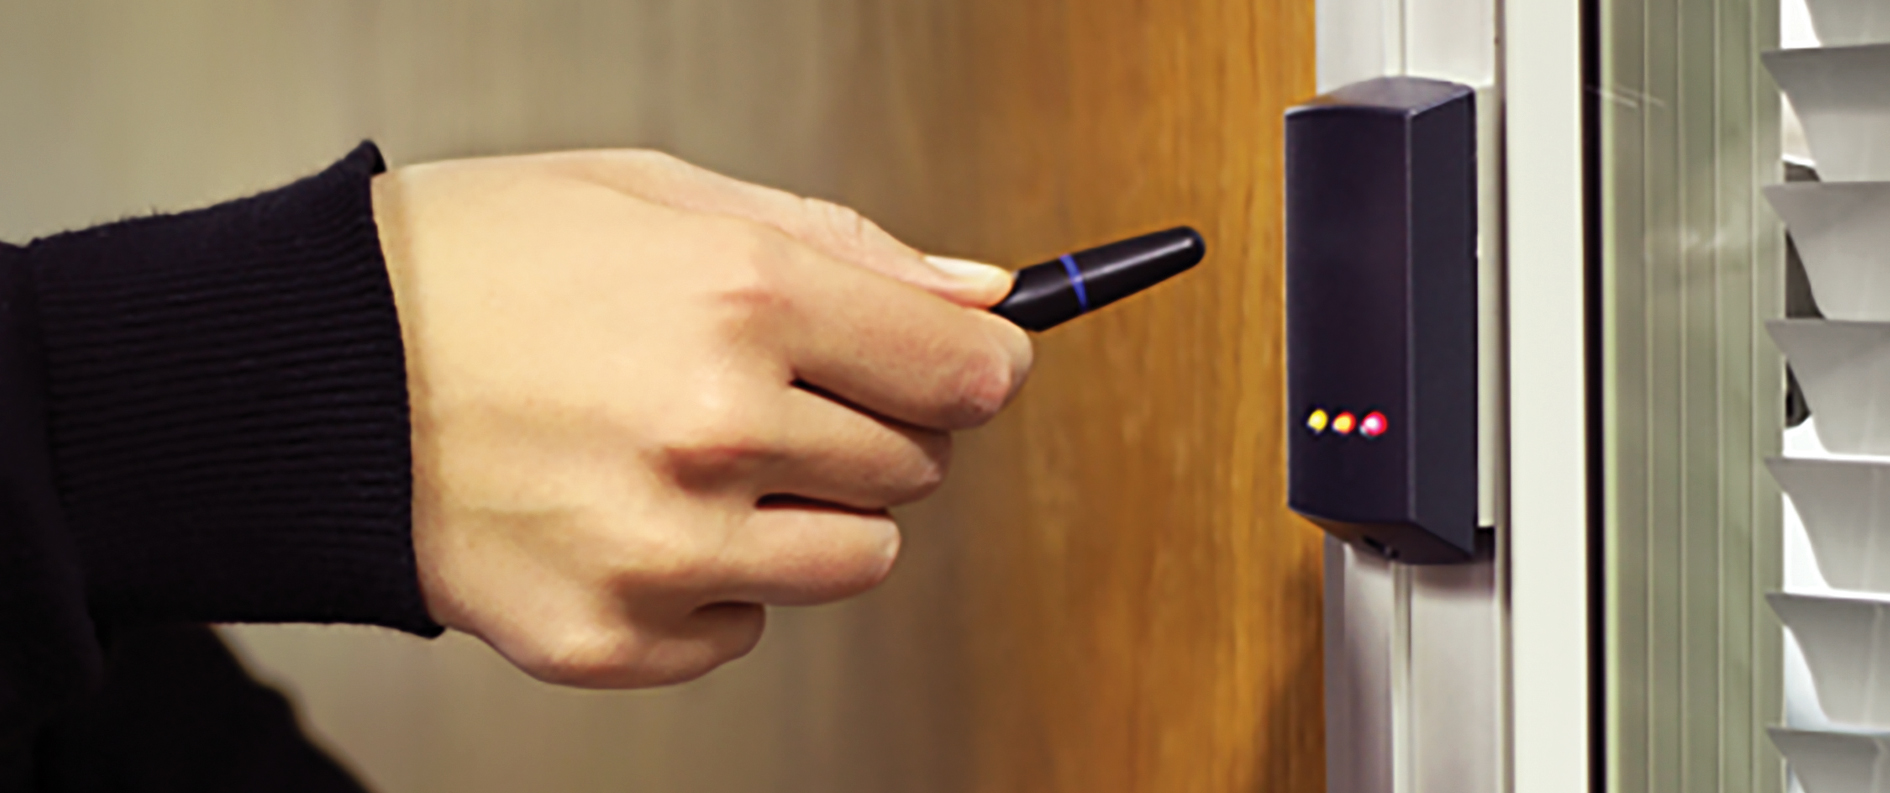 About Access Lock Security Installations